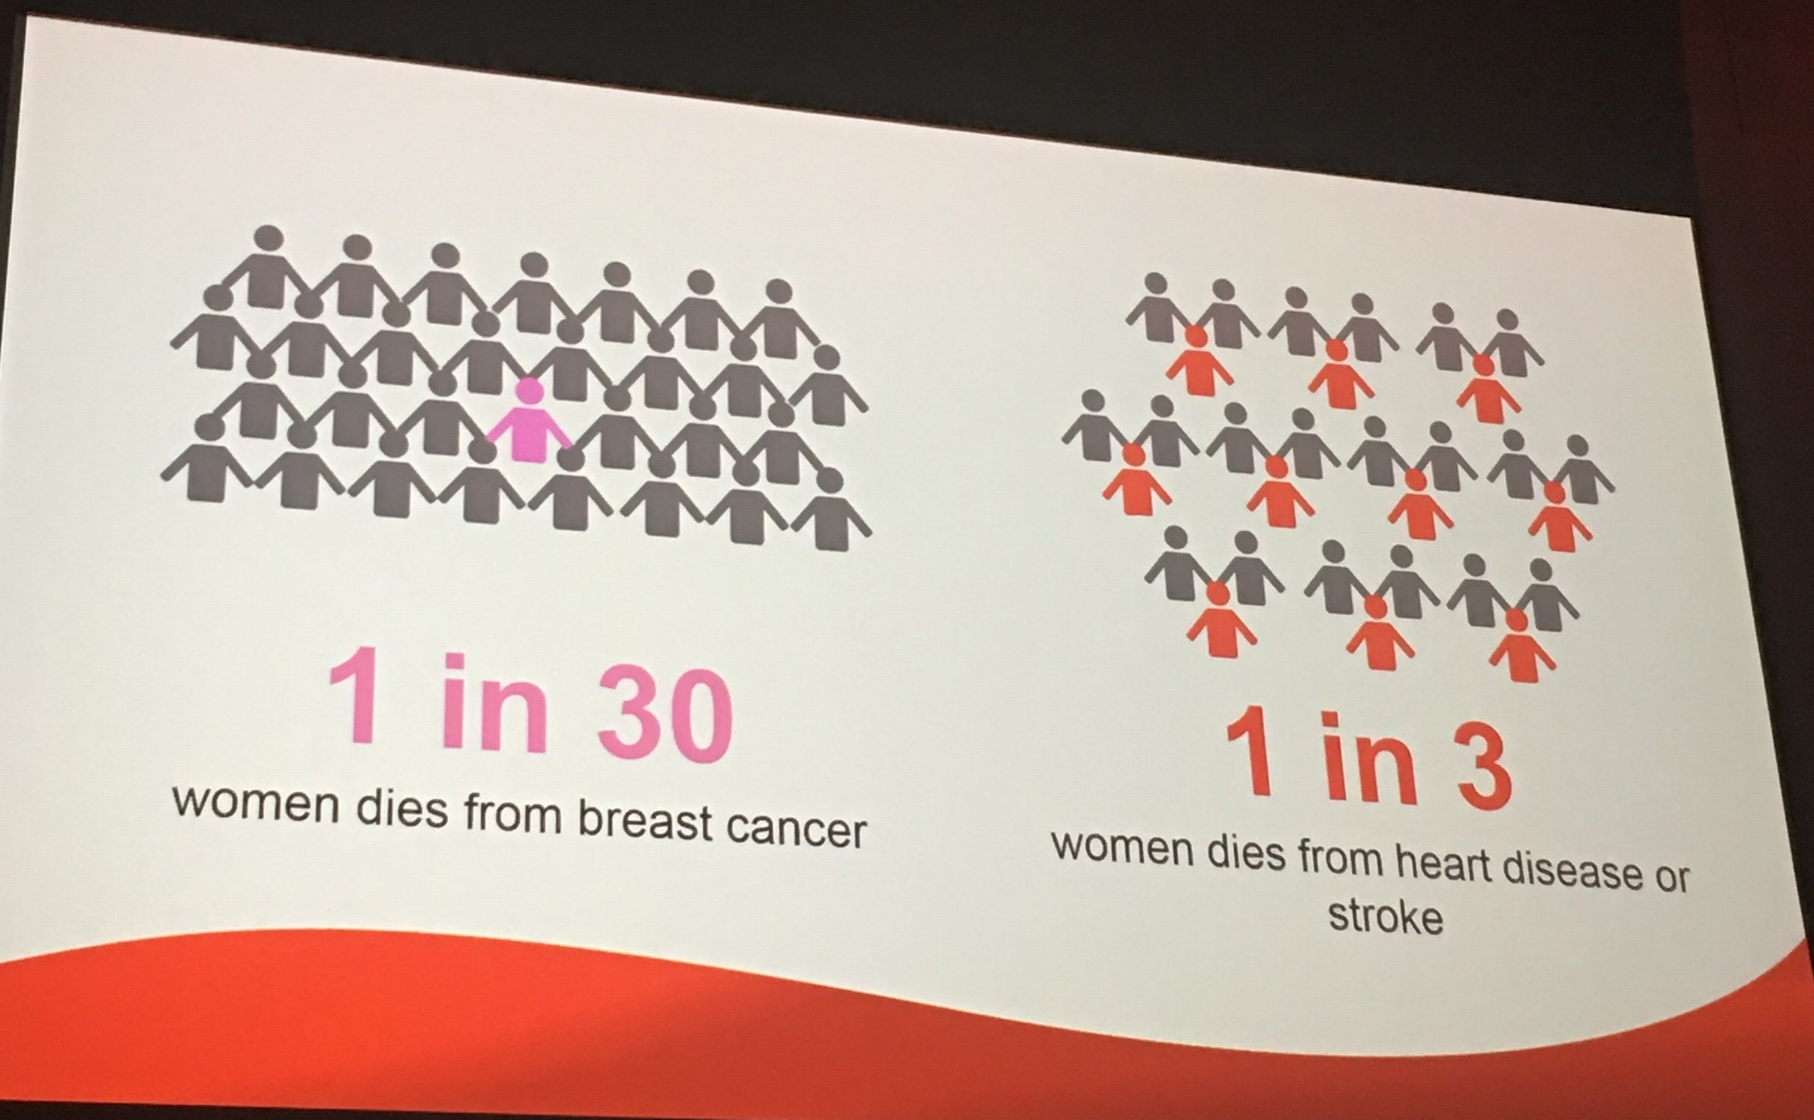 This is truly shocking!! 1 in 3 women dies from heart disease or stroke. This needs to end now!